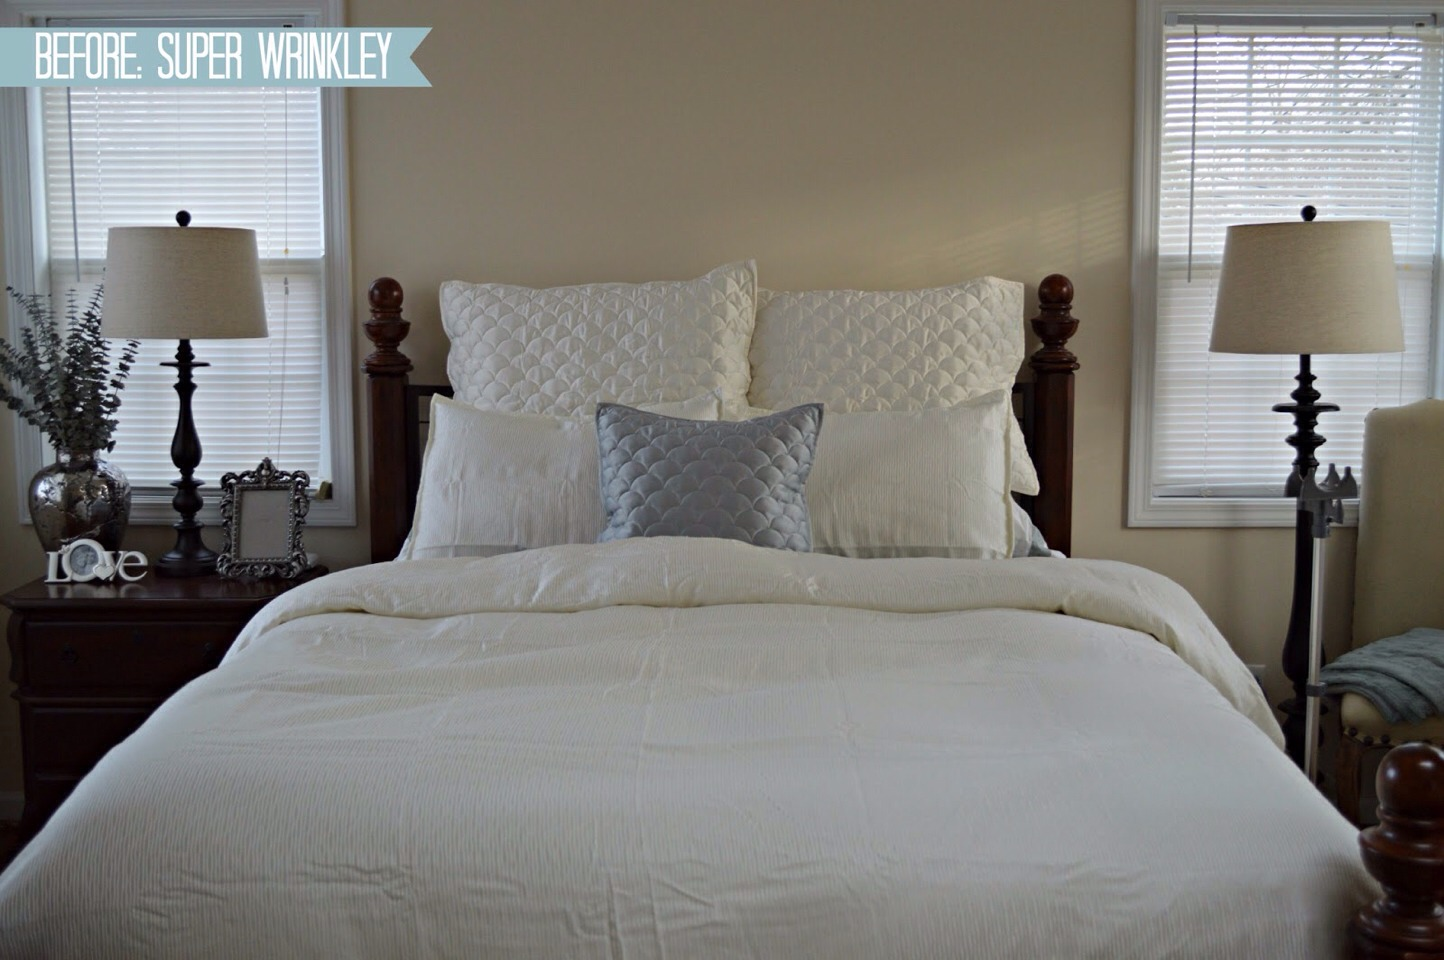 Make sure you have clean sheets to reduce risk of breakouts and silk pillowcases also help of you have spot prone skin